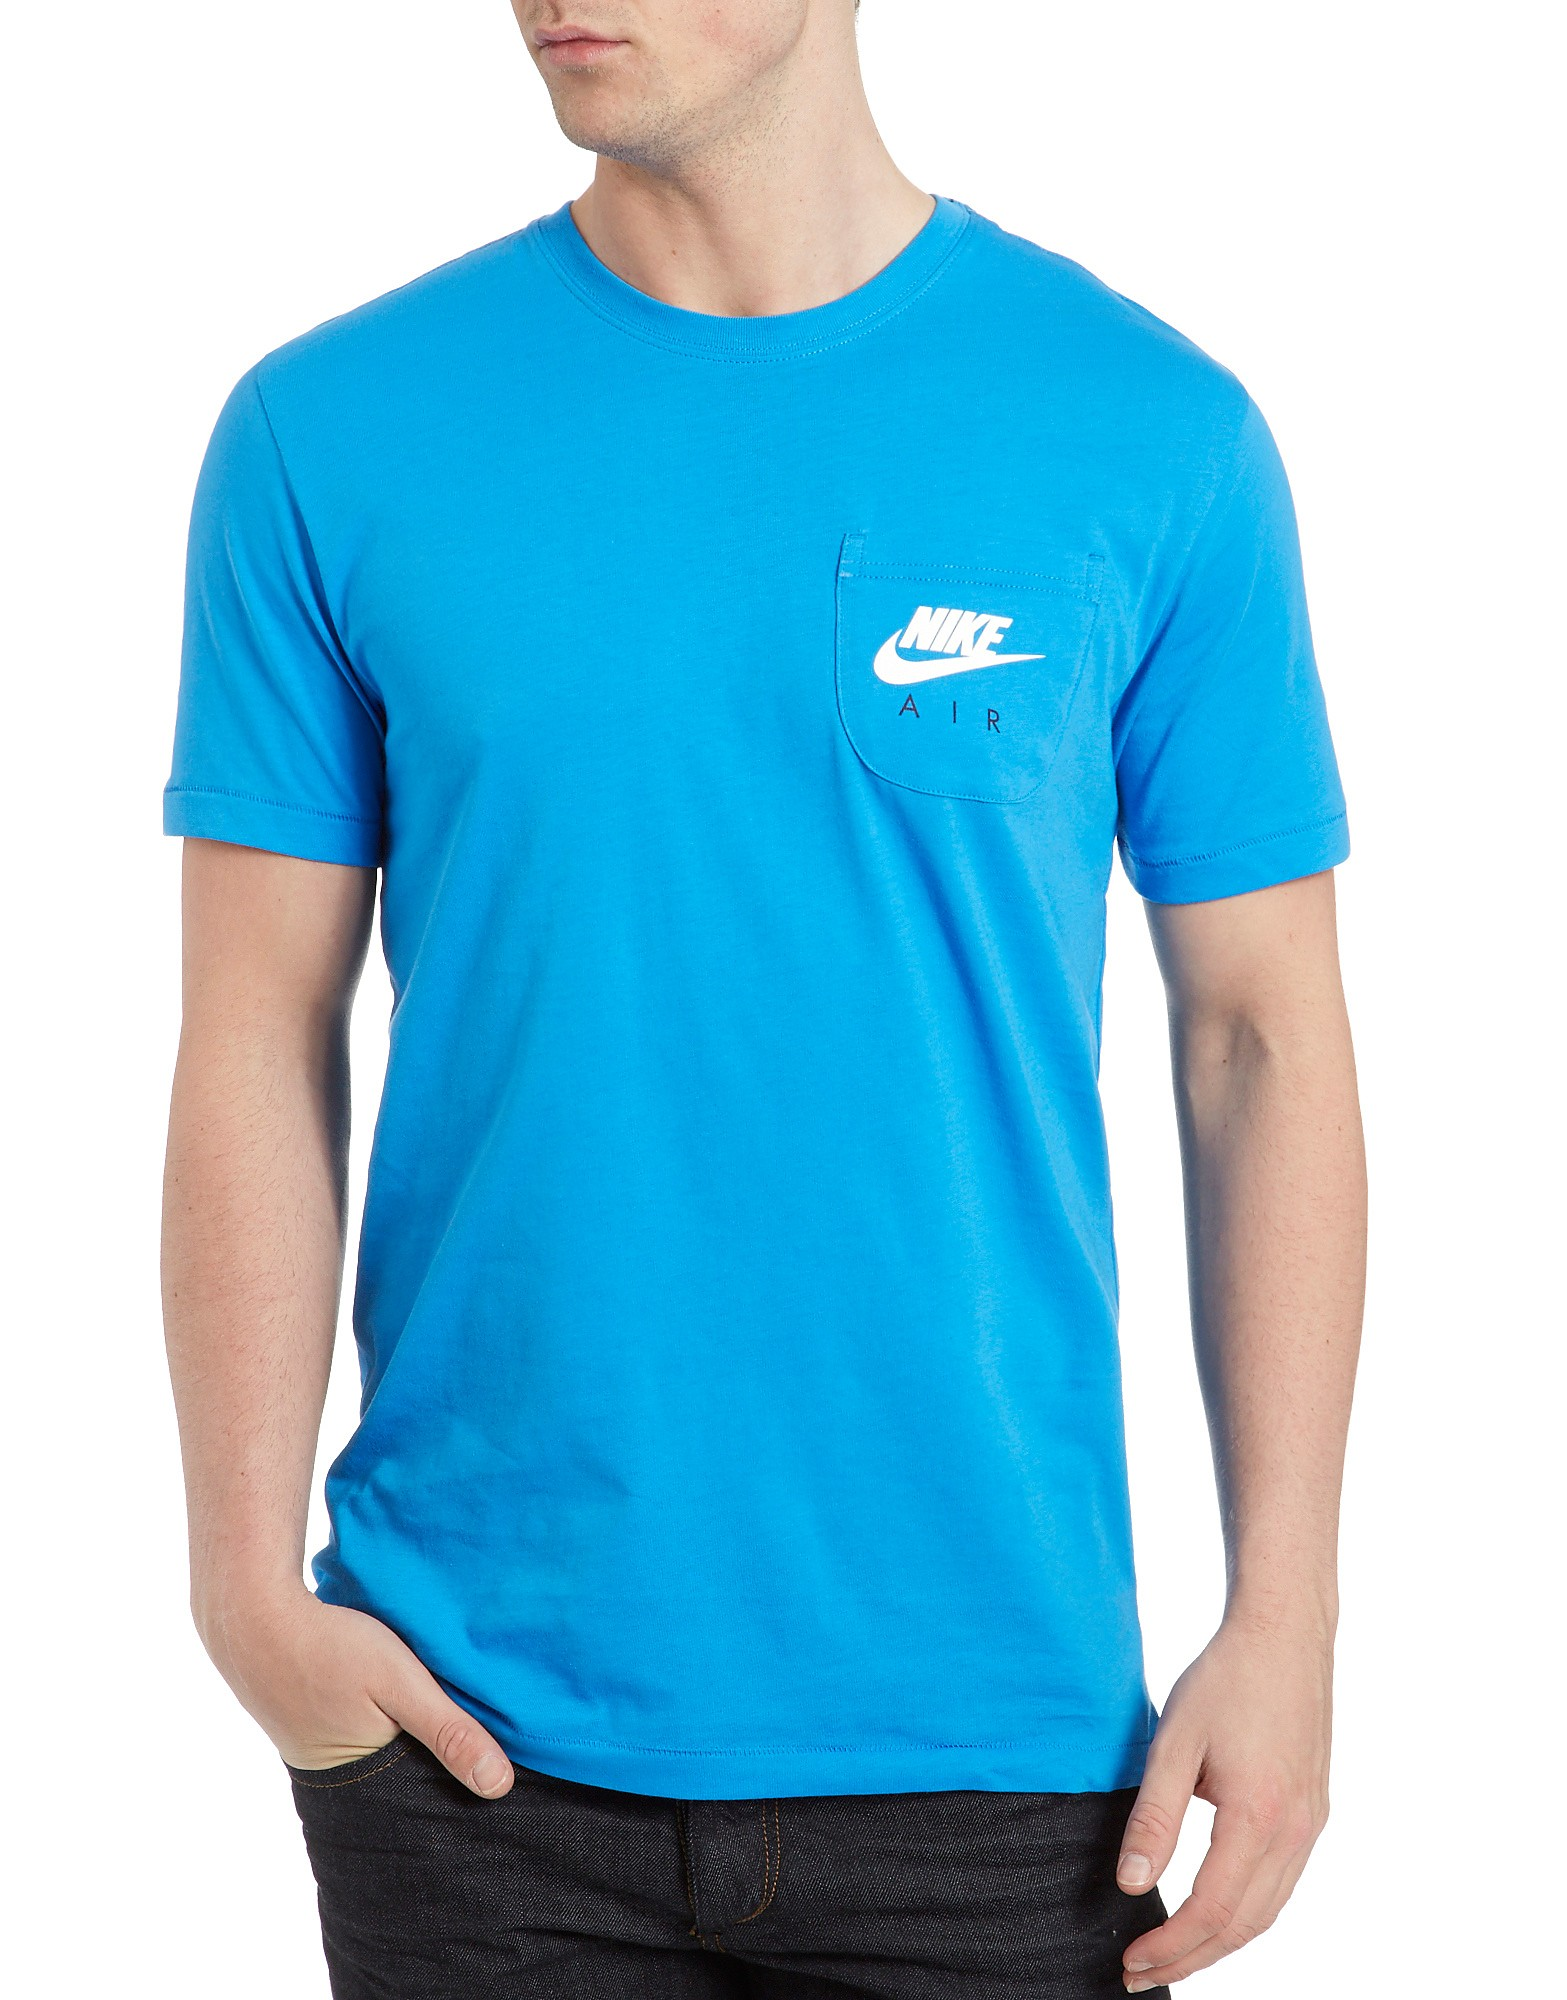 Nike Air Glory T-Shirt product image